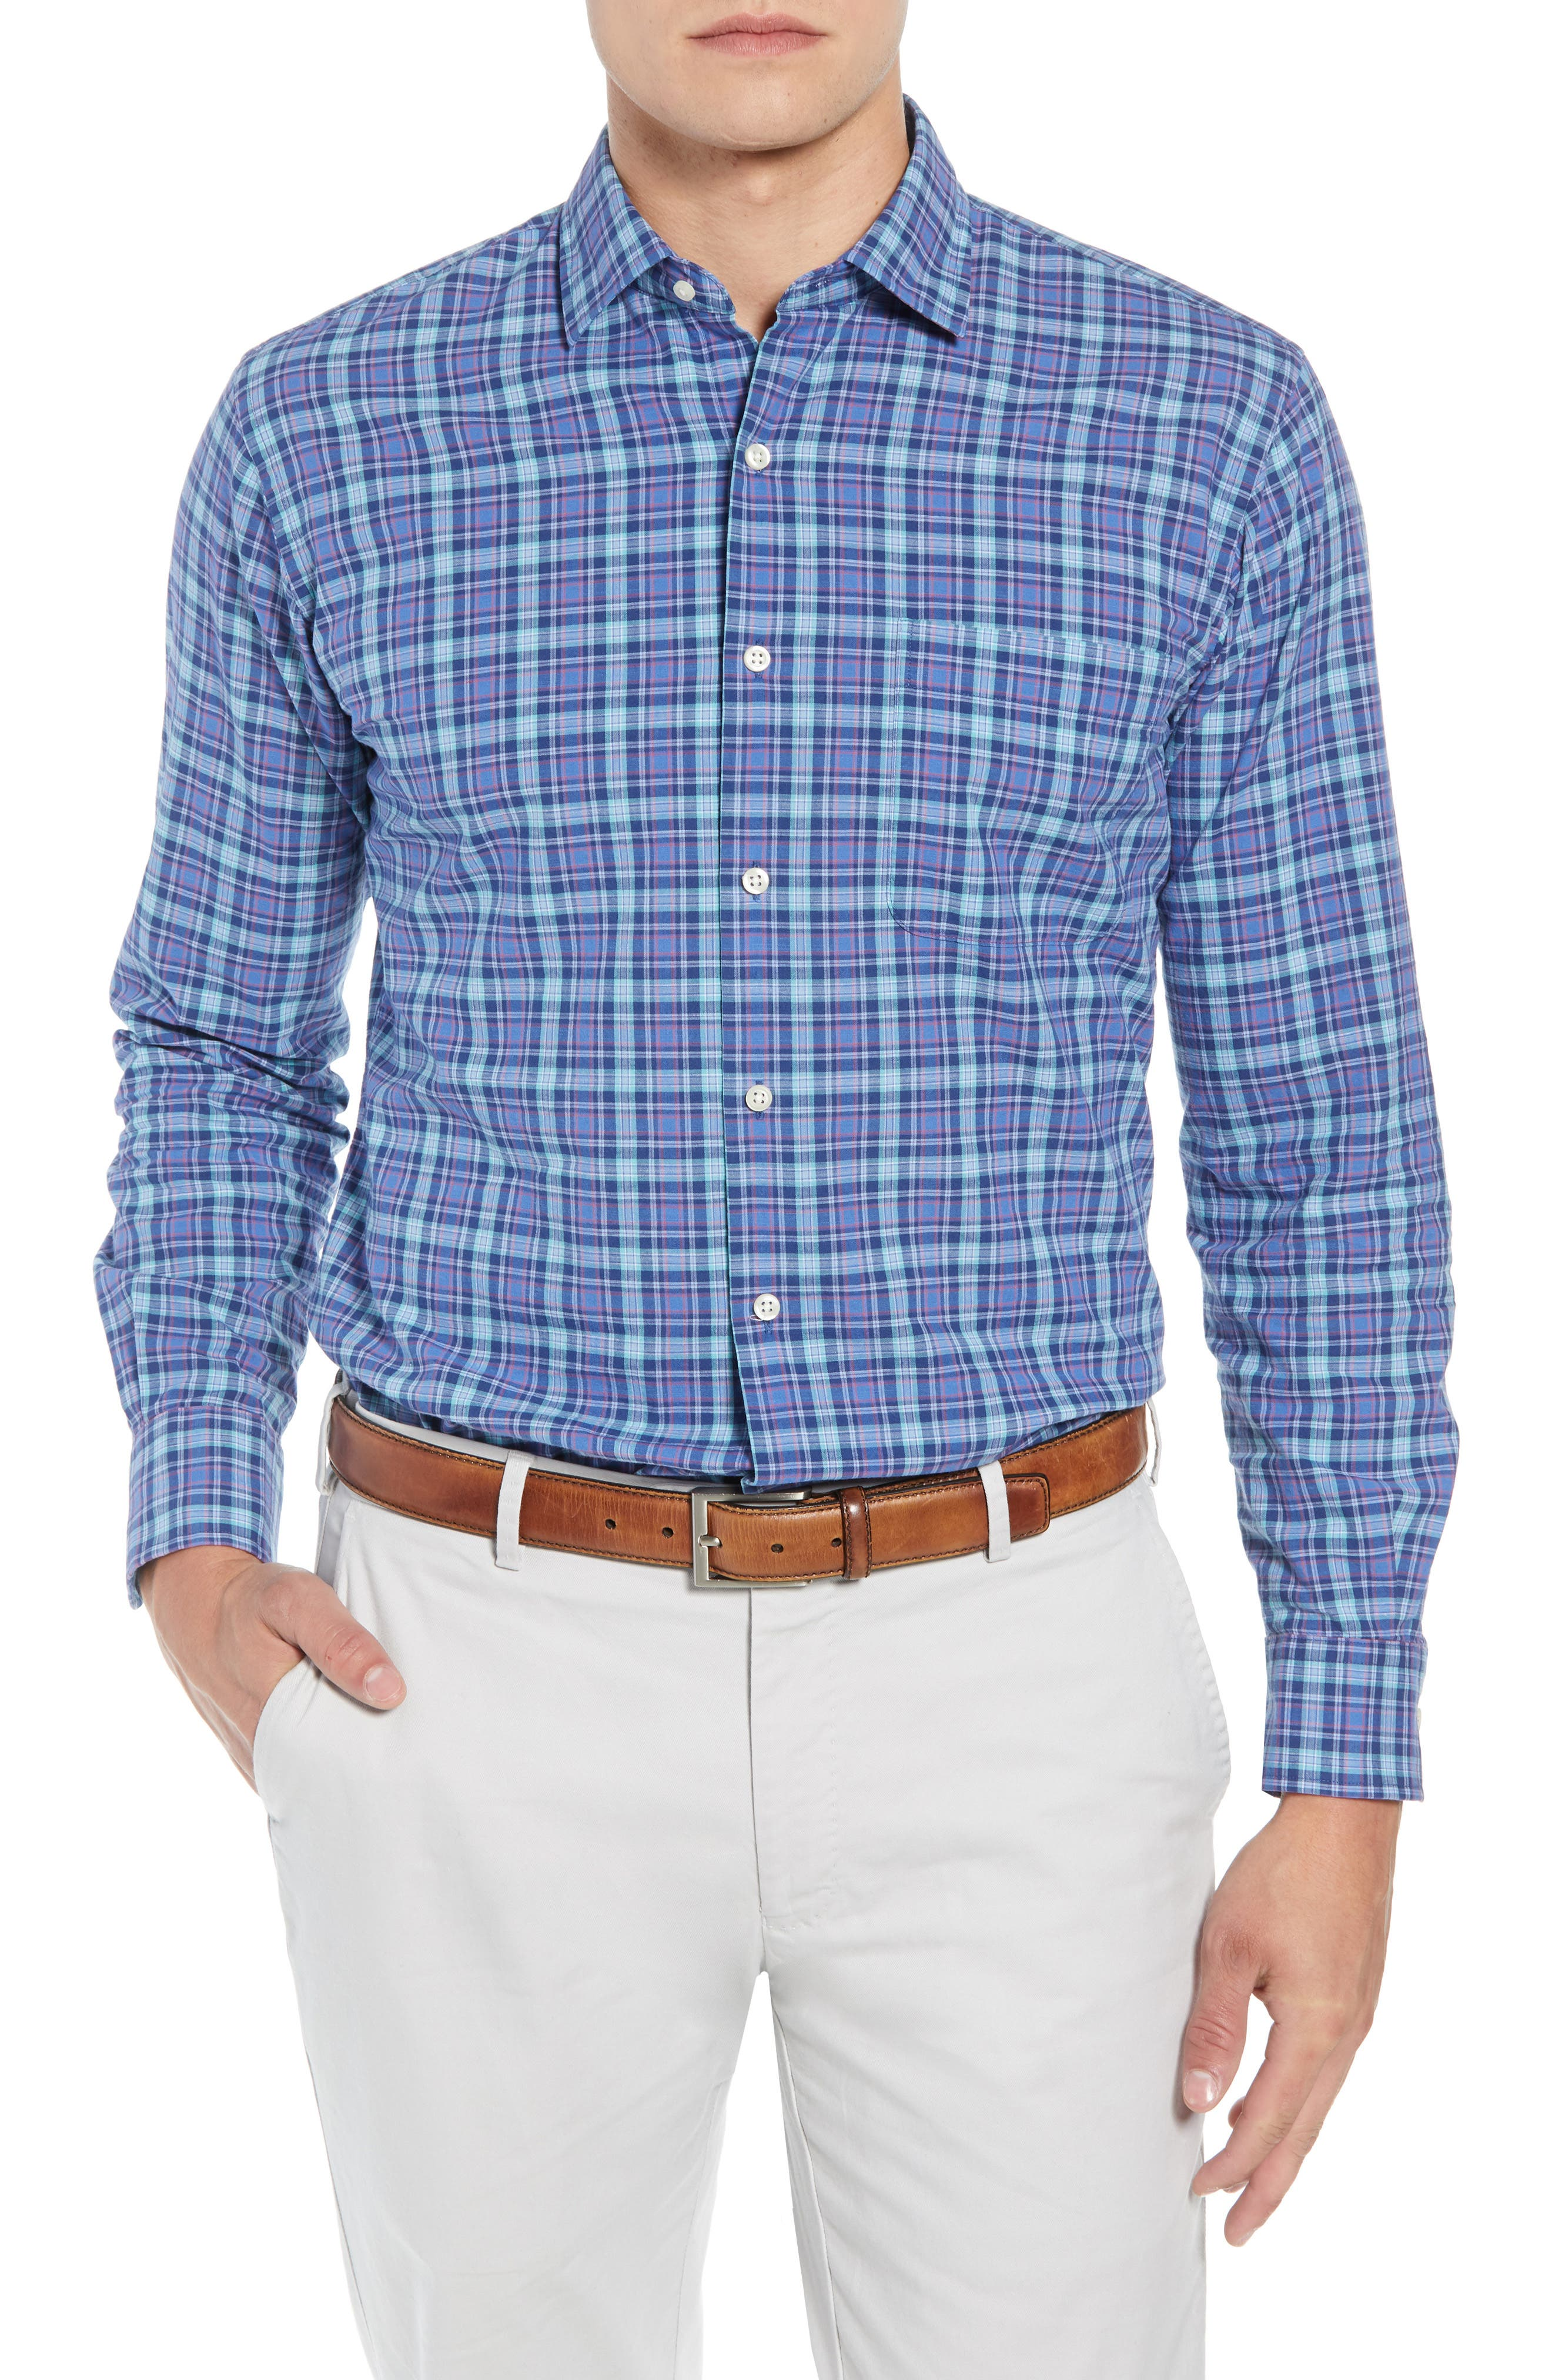 Fisherman's Wharf Regular Fit Plaid Sport Shirt,                             Main thumbnail 1, color,                             BLUE